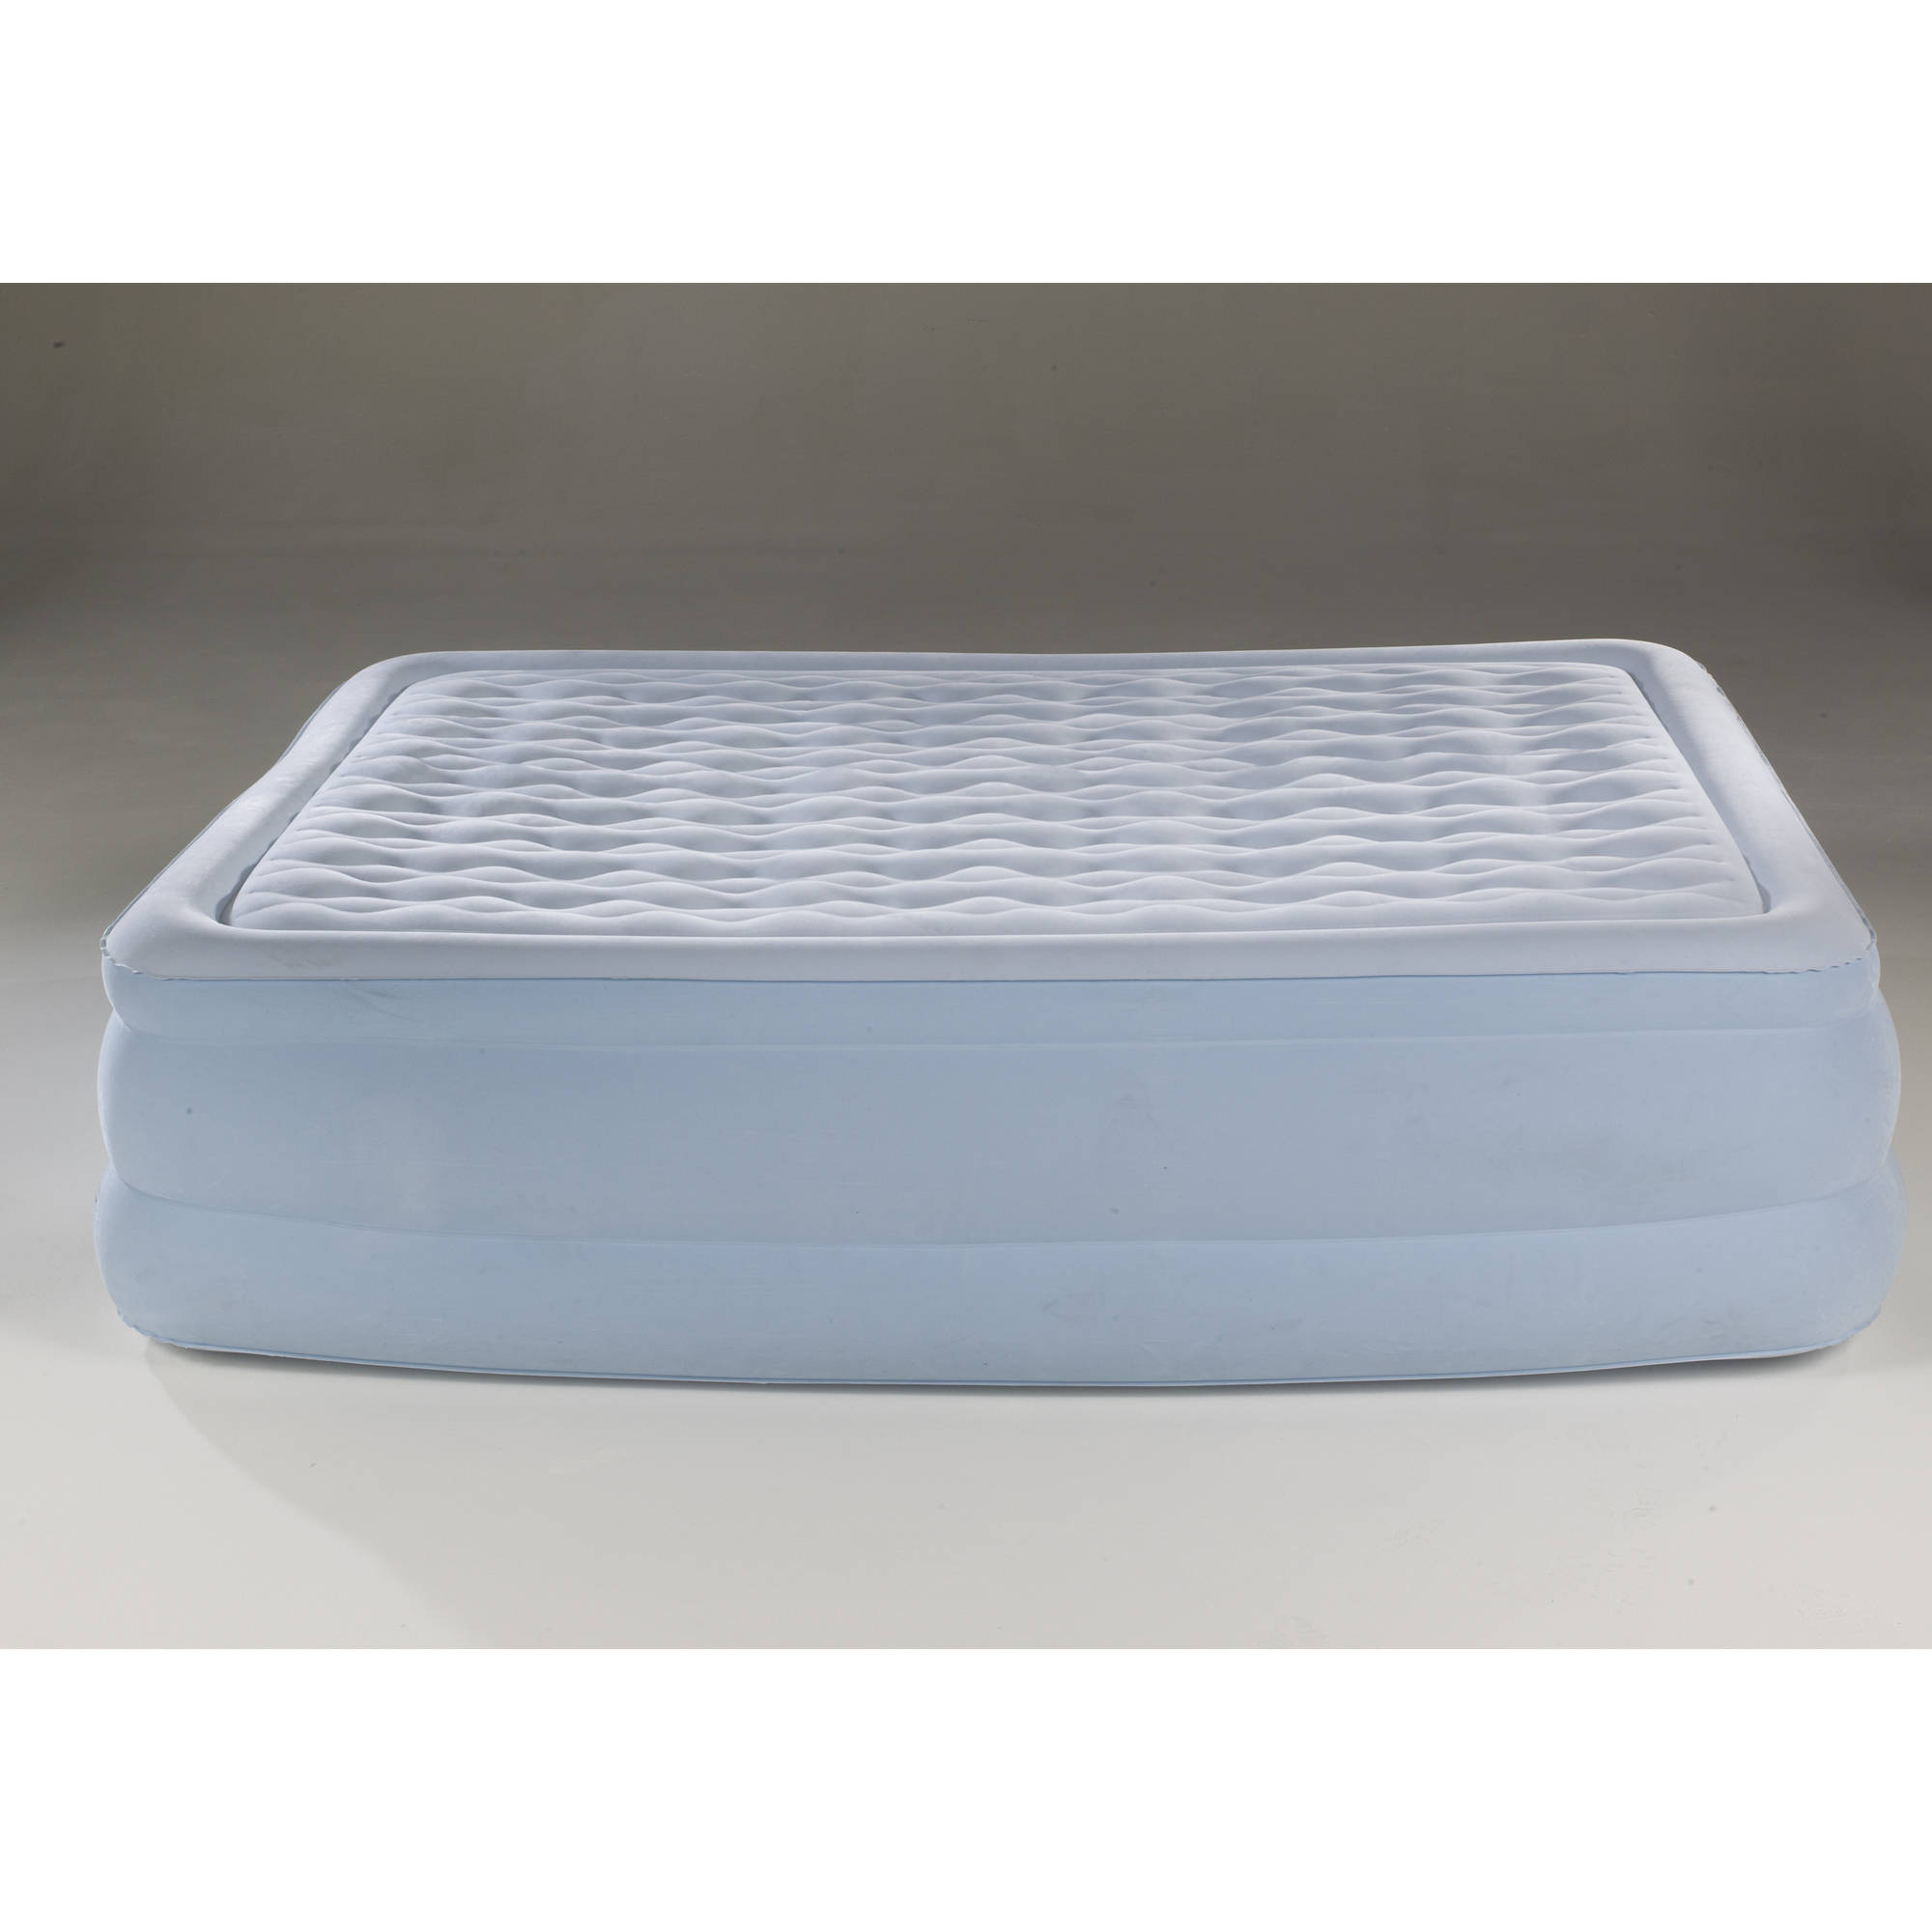 "Simmons Beautyrest Contour Aire 18"" Queen Raised Air Bed Mattress"